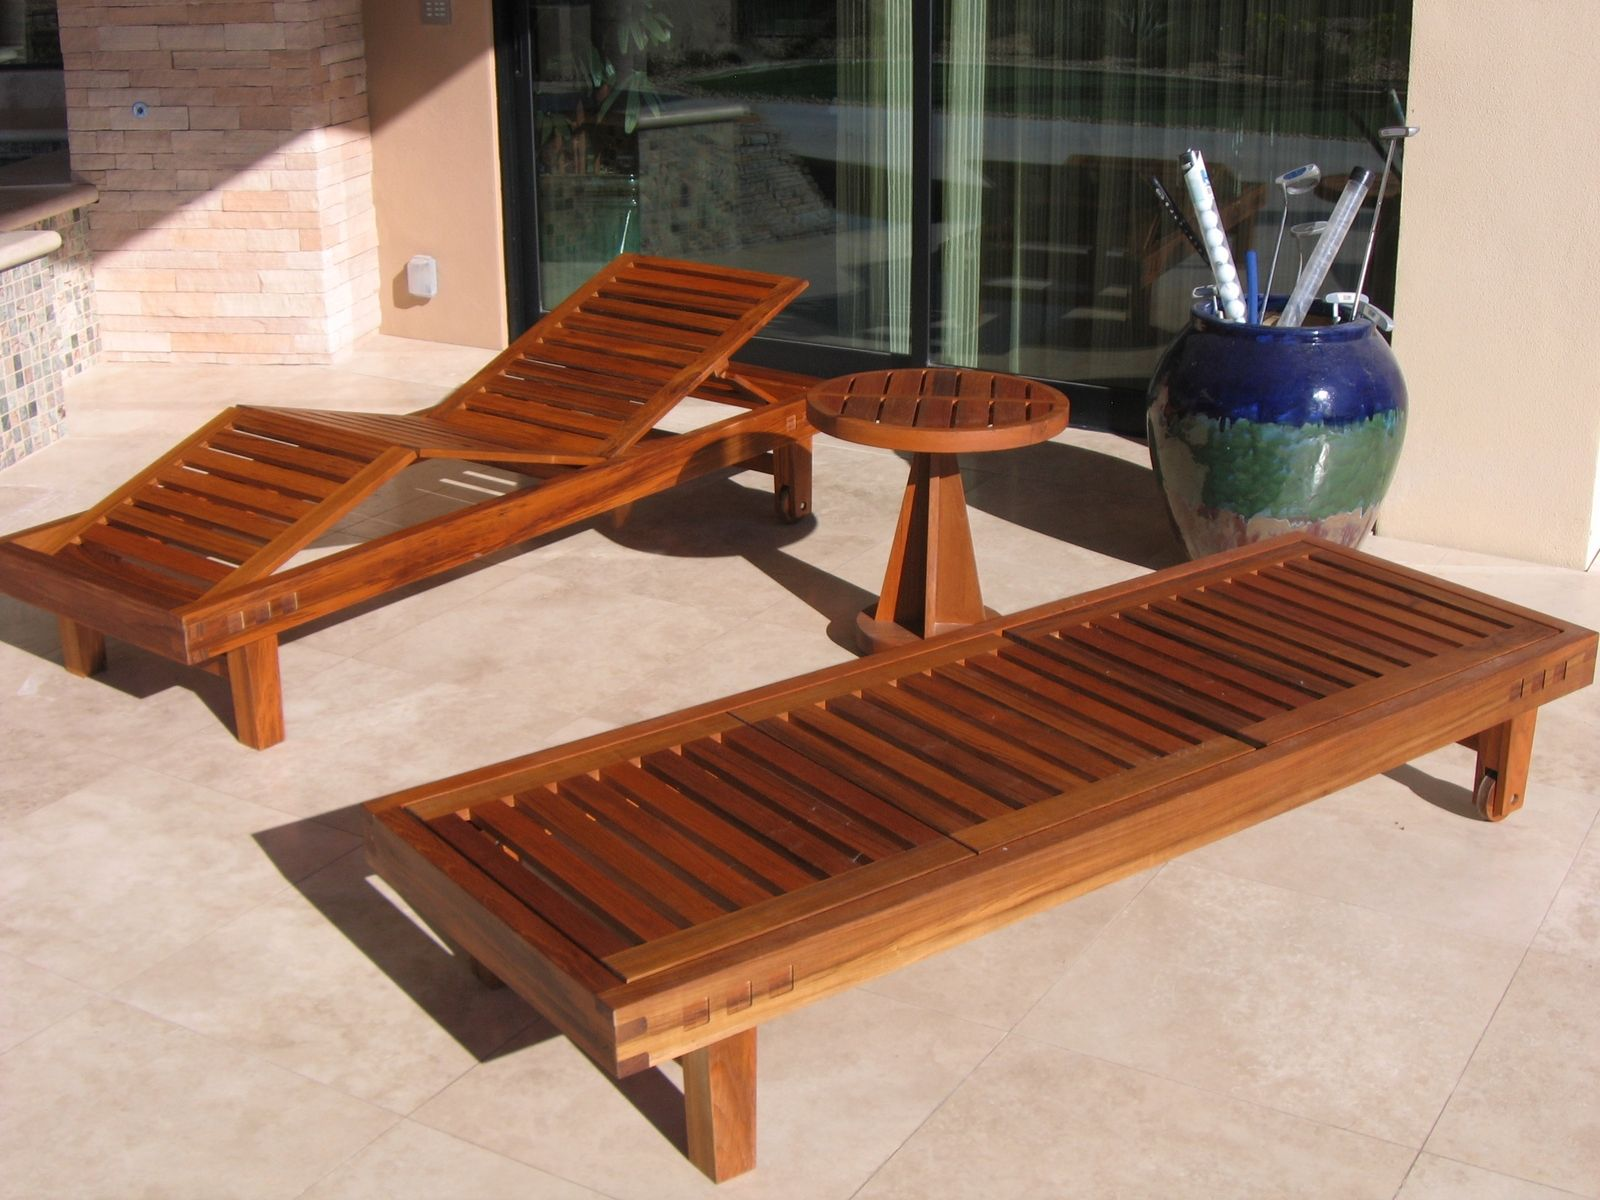 Handmade Teak Patio Furniture by Riverwoods Mill  : 877257030 from www.custommade.com size 1600 x 1200 jpeg 215kB